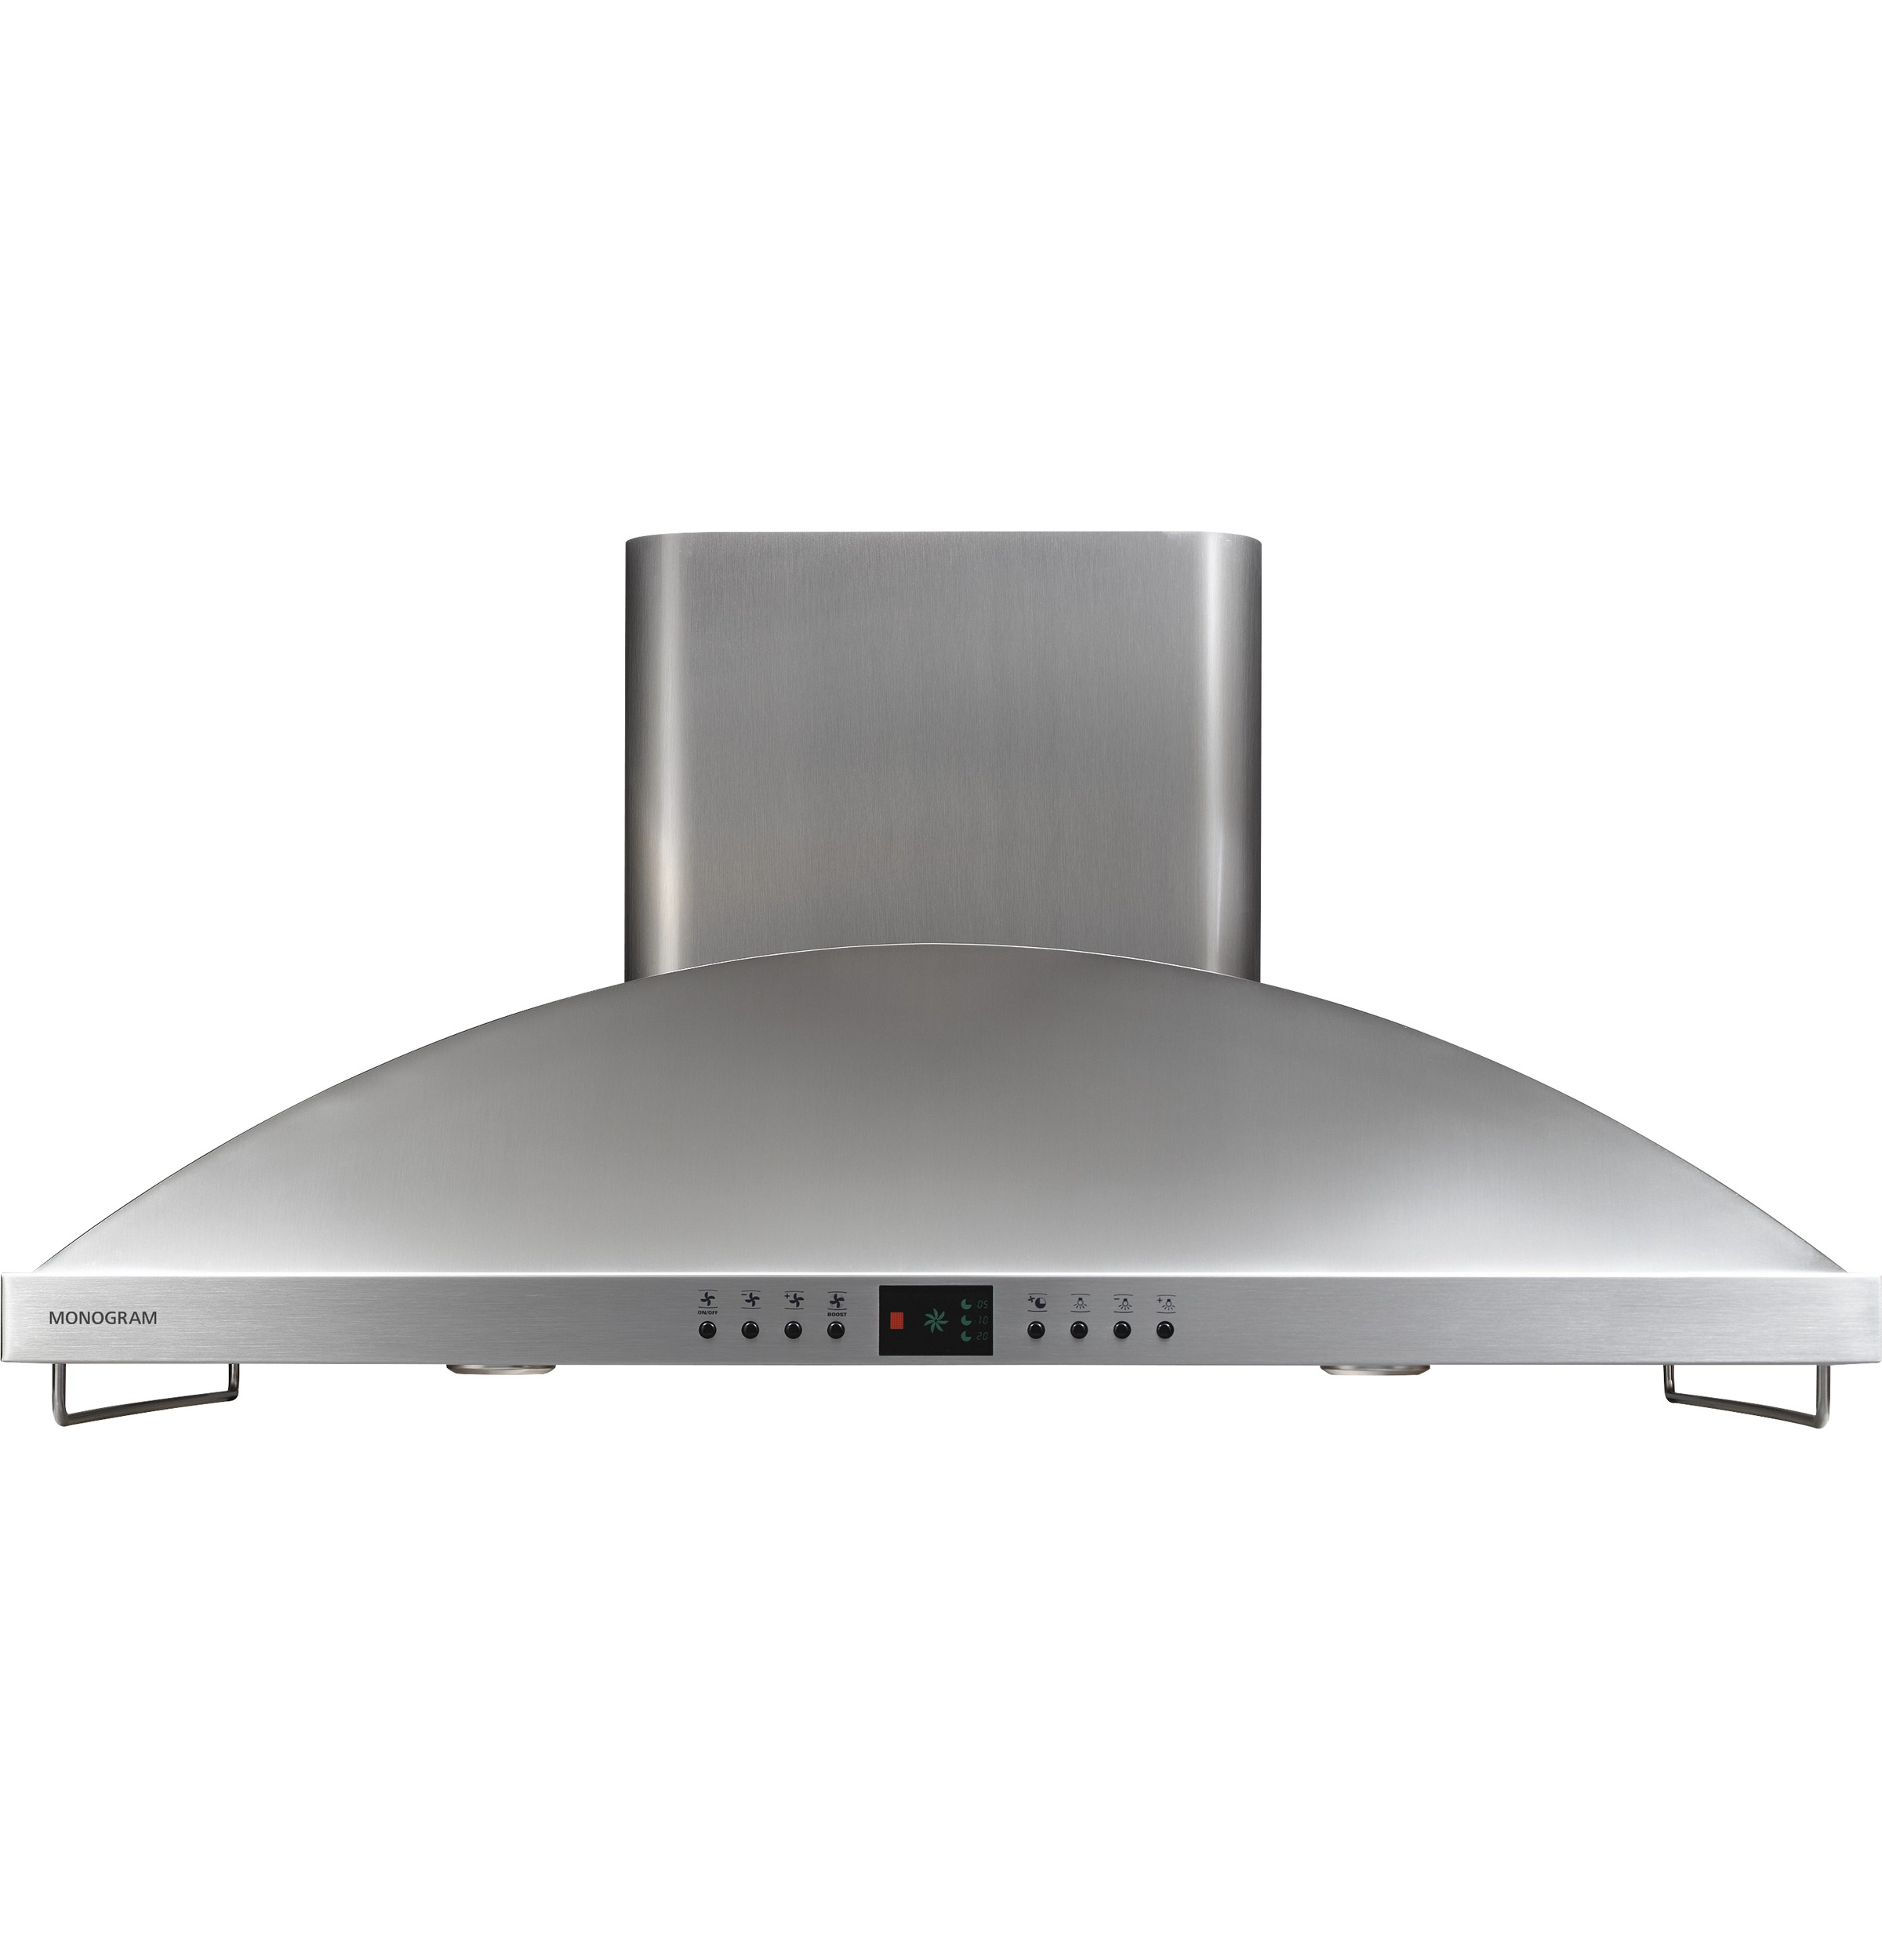 "Monogram Monogram 42"" High Performance Island Hood"